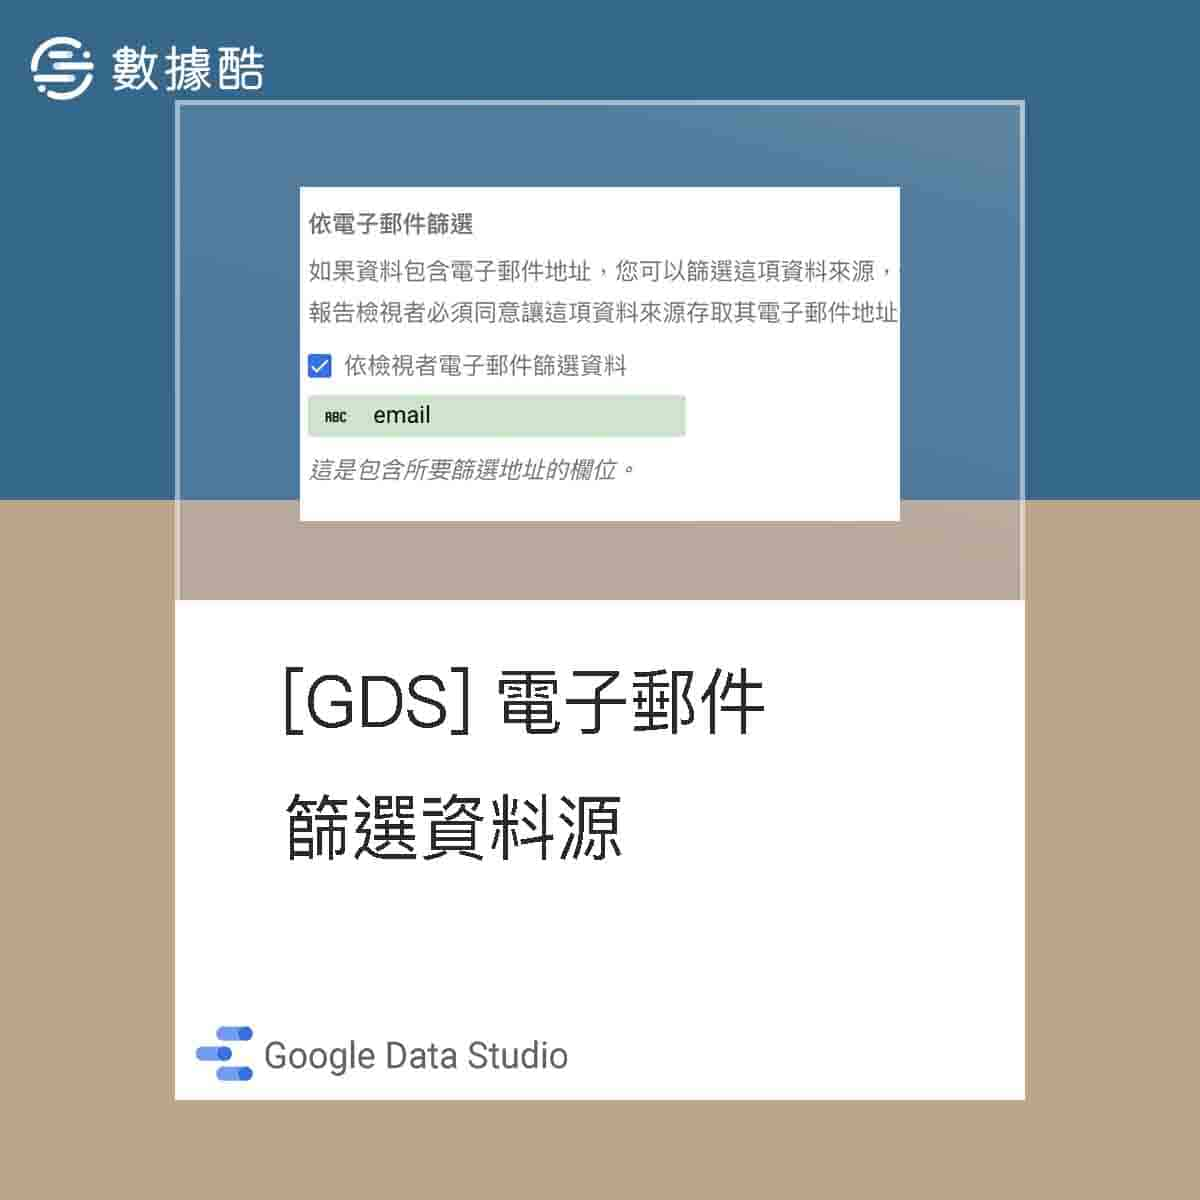 Google Data Studio 電子郵件